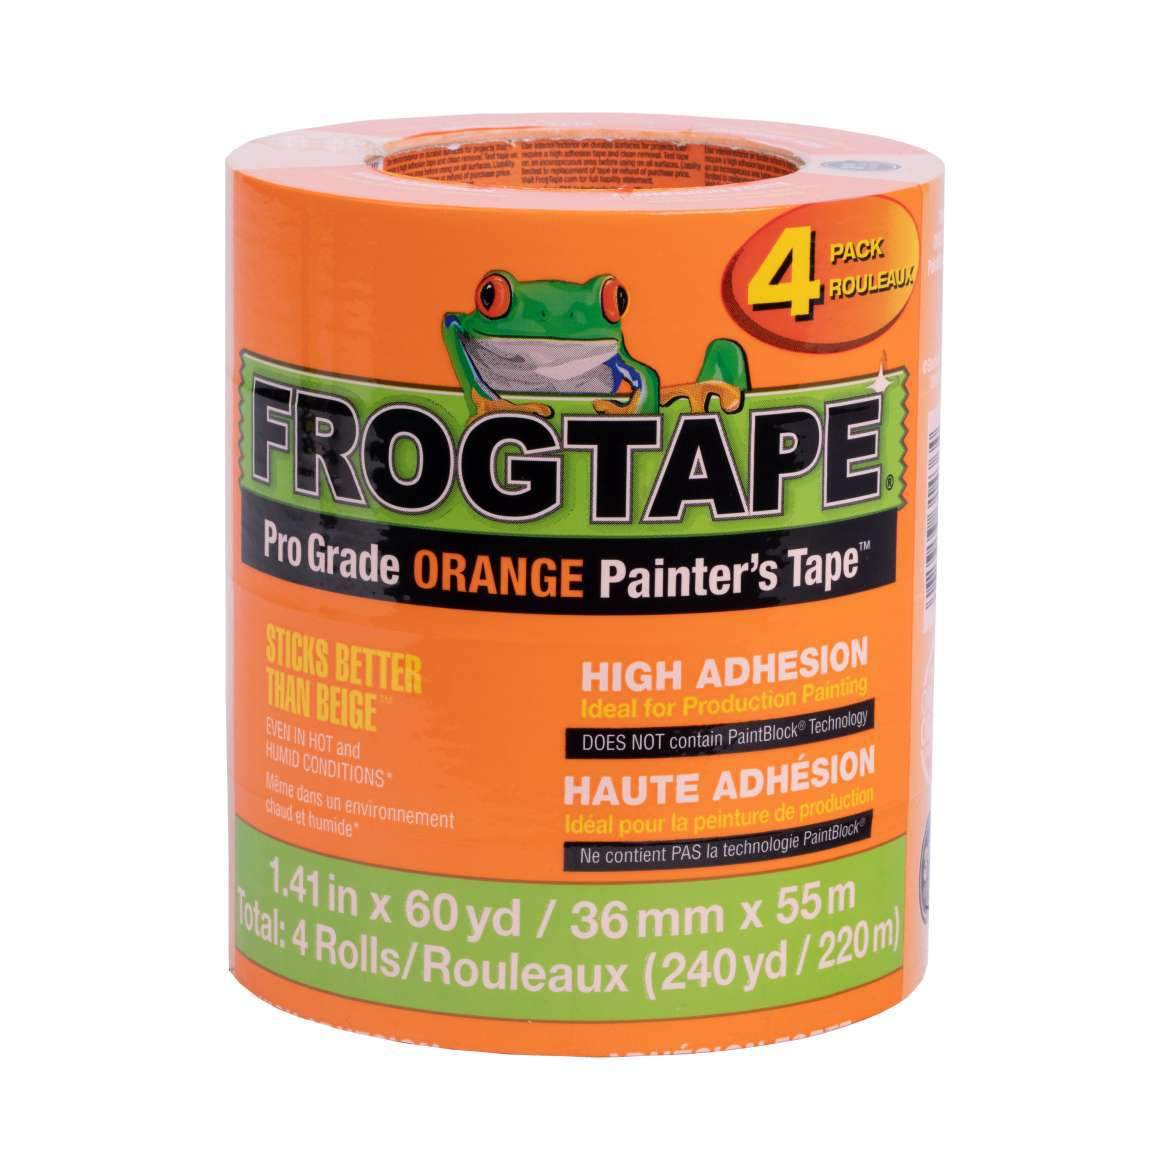 Orange frogtape high adhesion 4 pack, available at JC Licht in Chicago, IL.